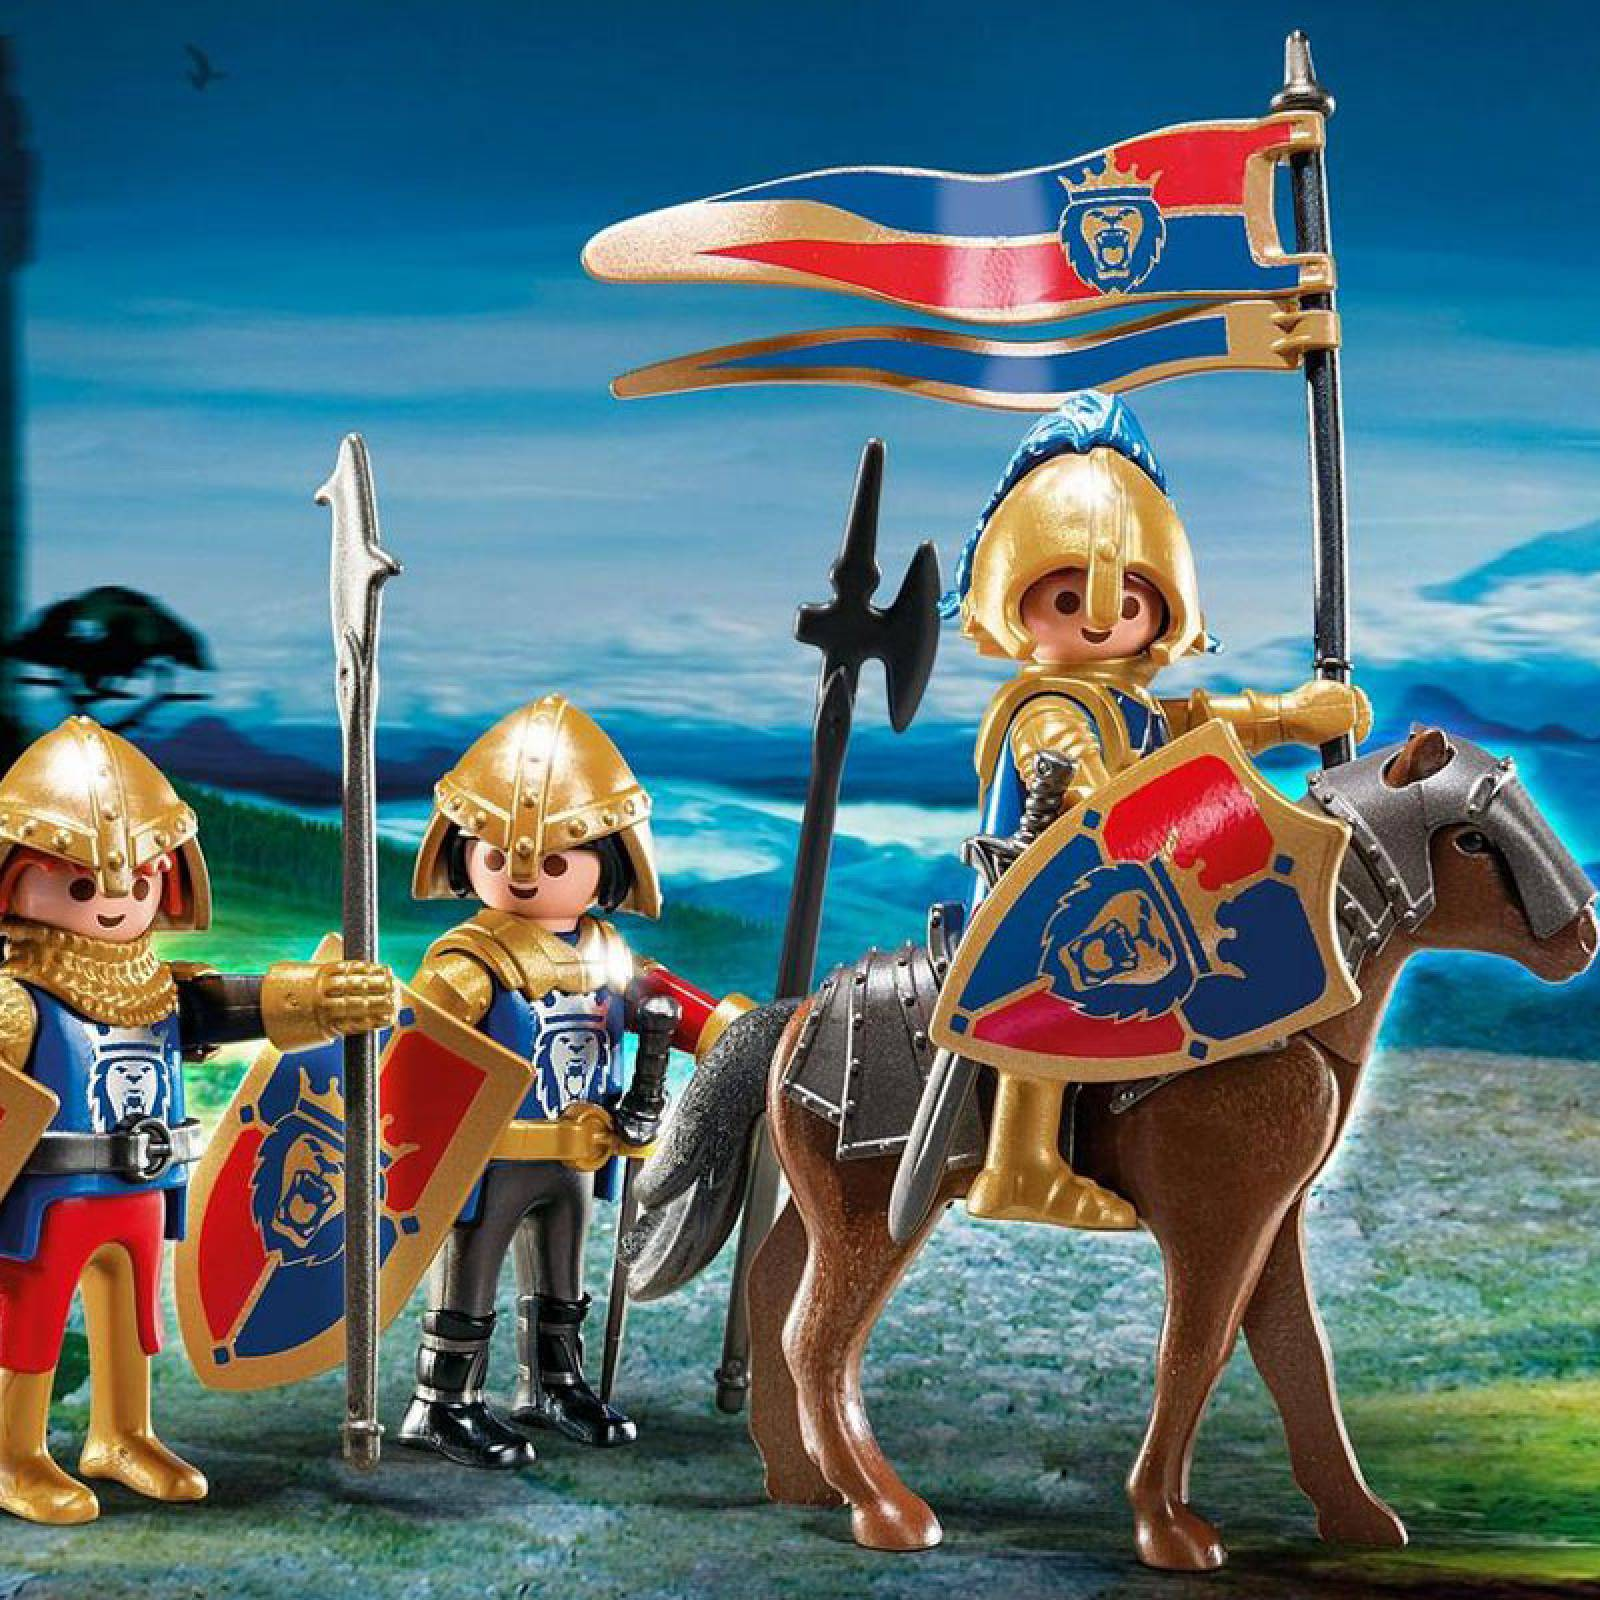 Royal Lion Knights Playmobil 6006 4-10yrs